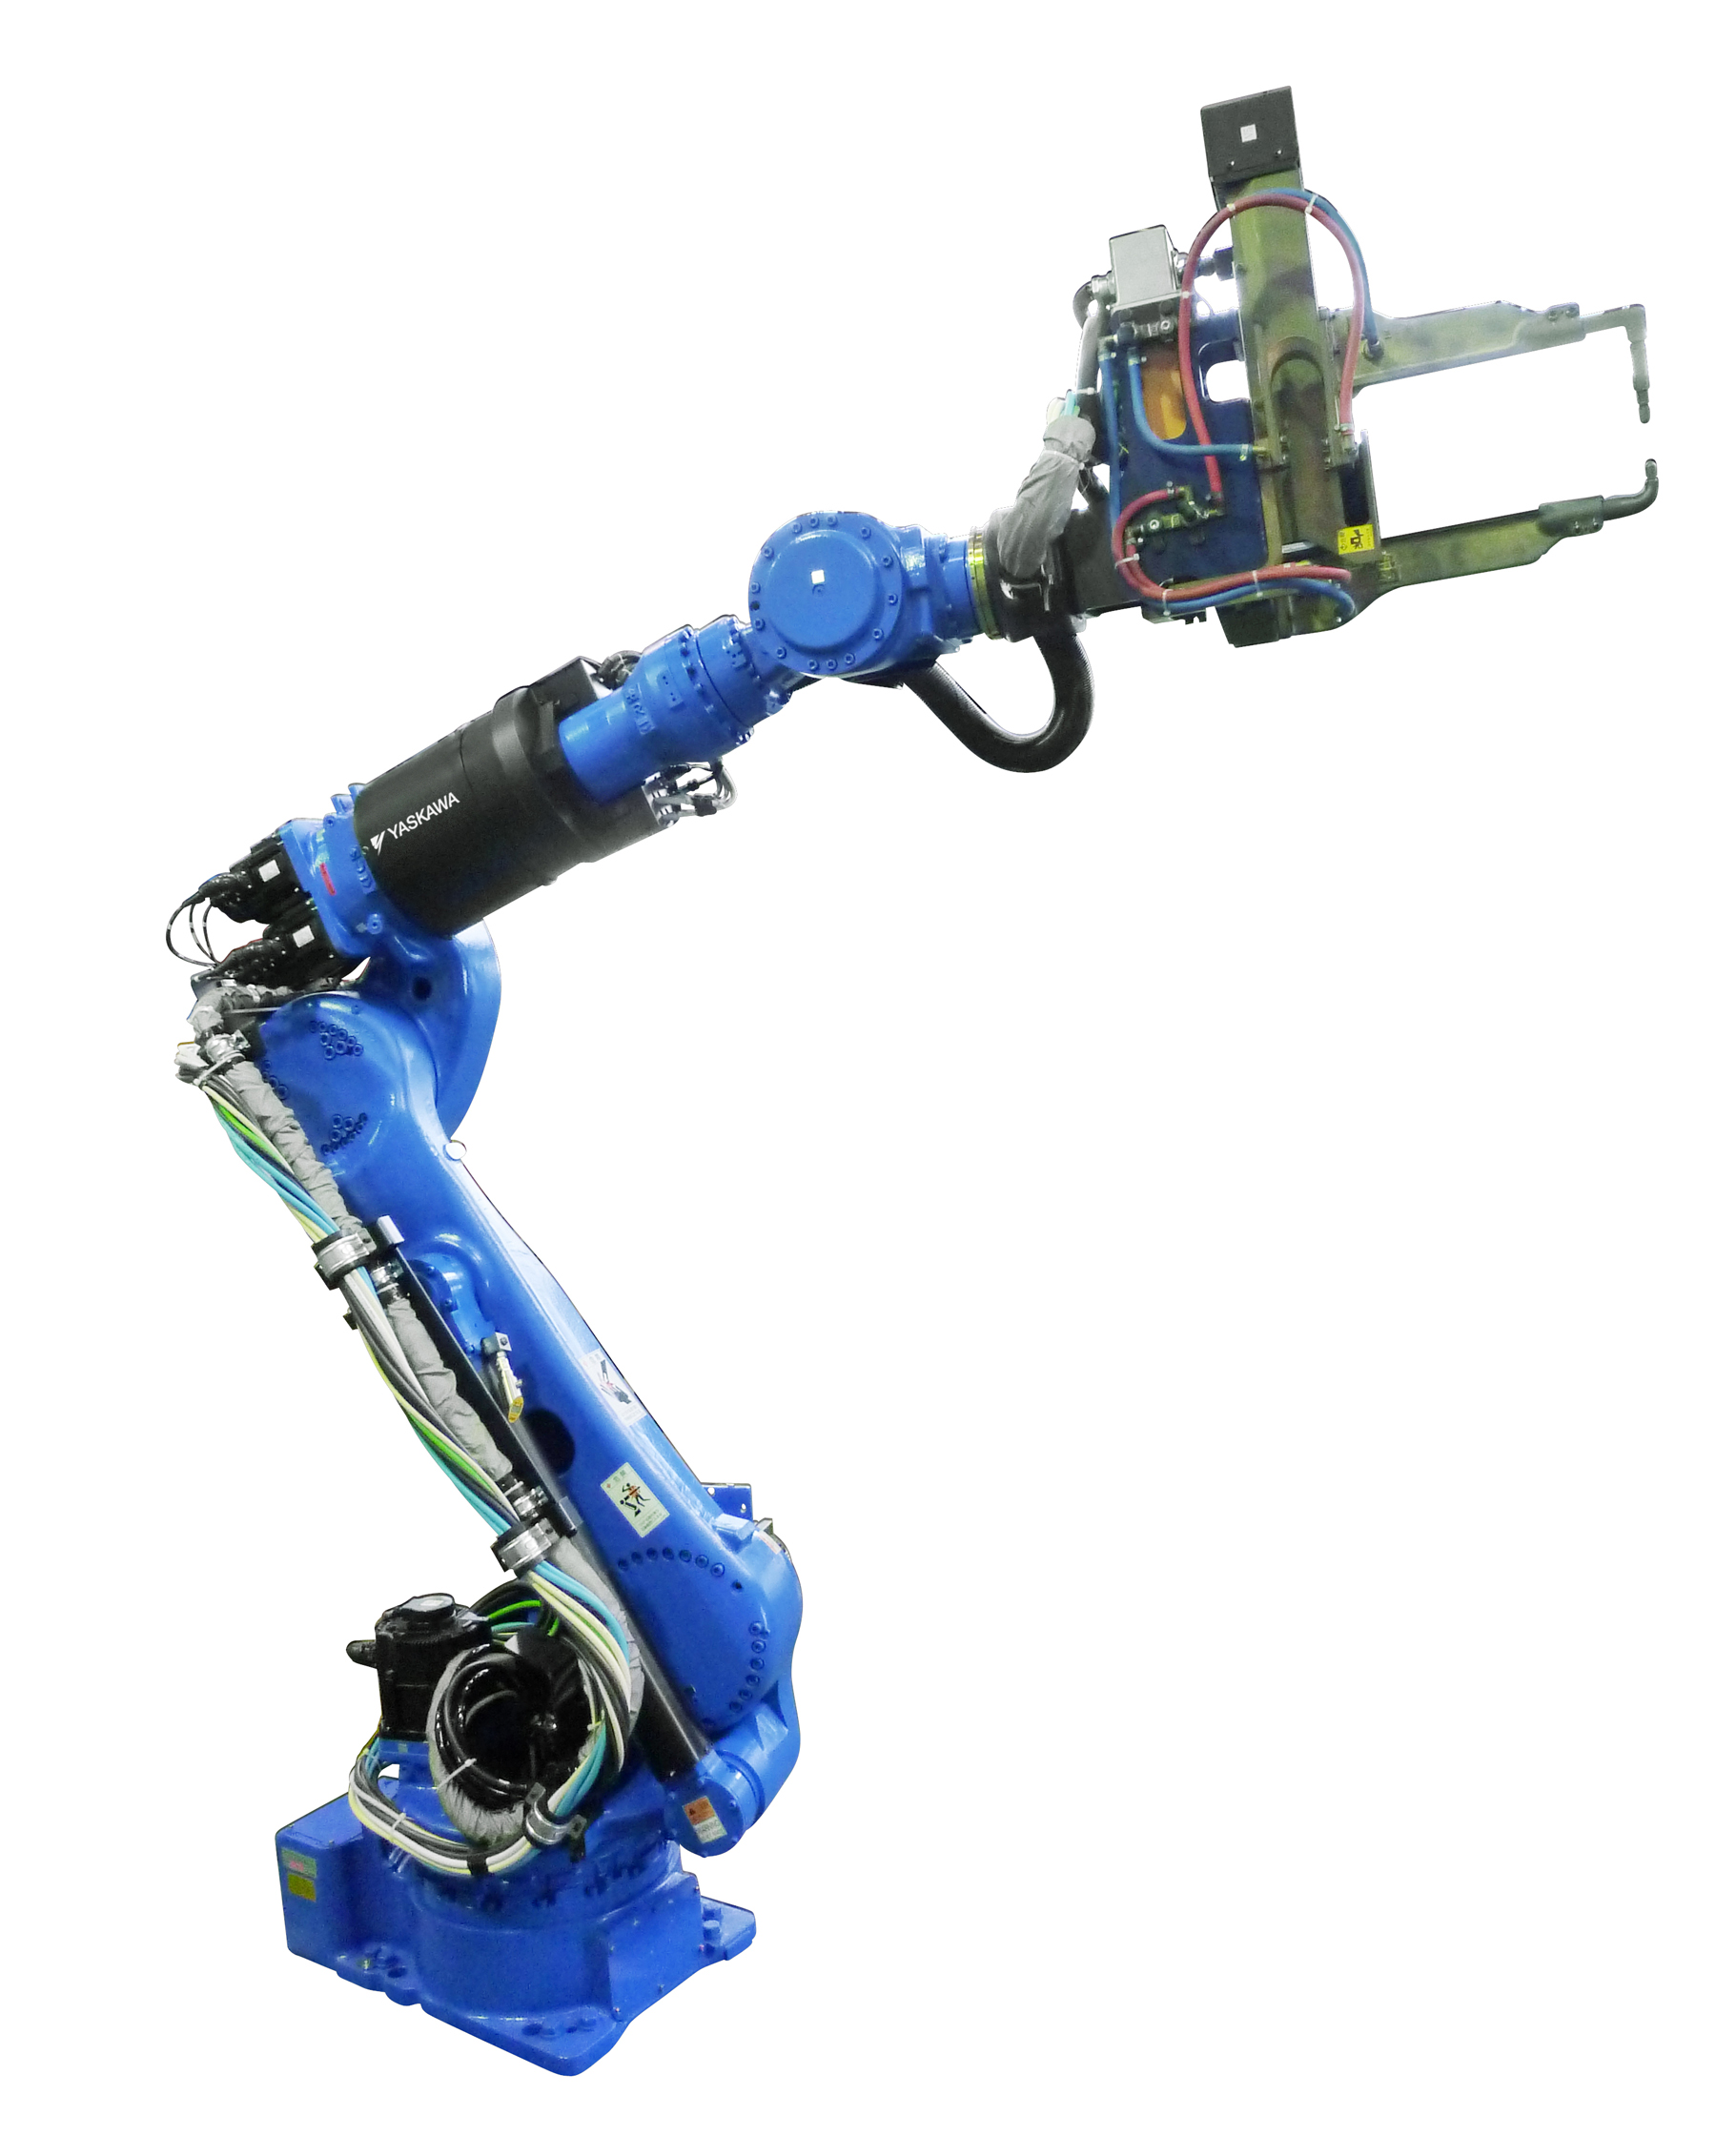 Yaskawa motoman compact ms165 ms210 robots optimized for for Motor technology inc dayton ohio